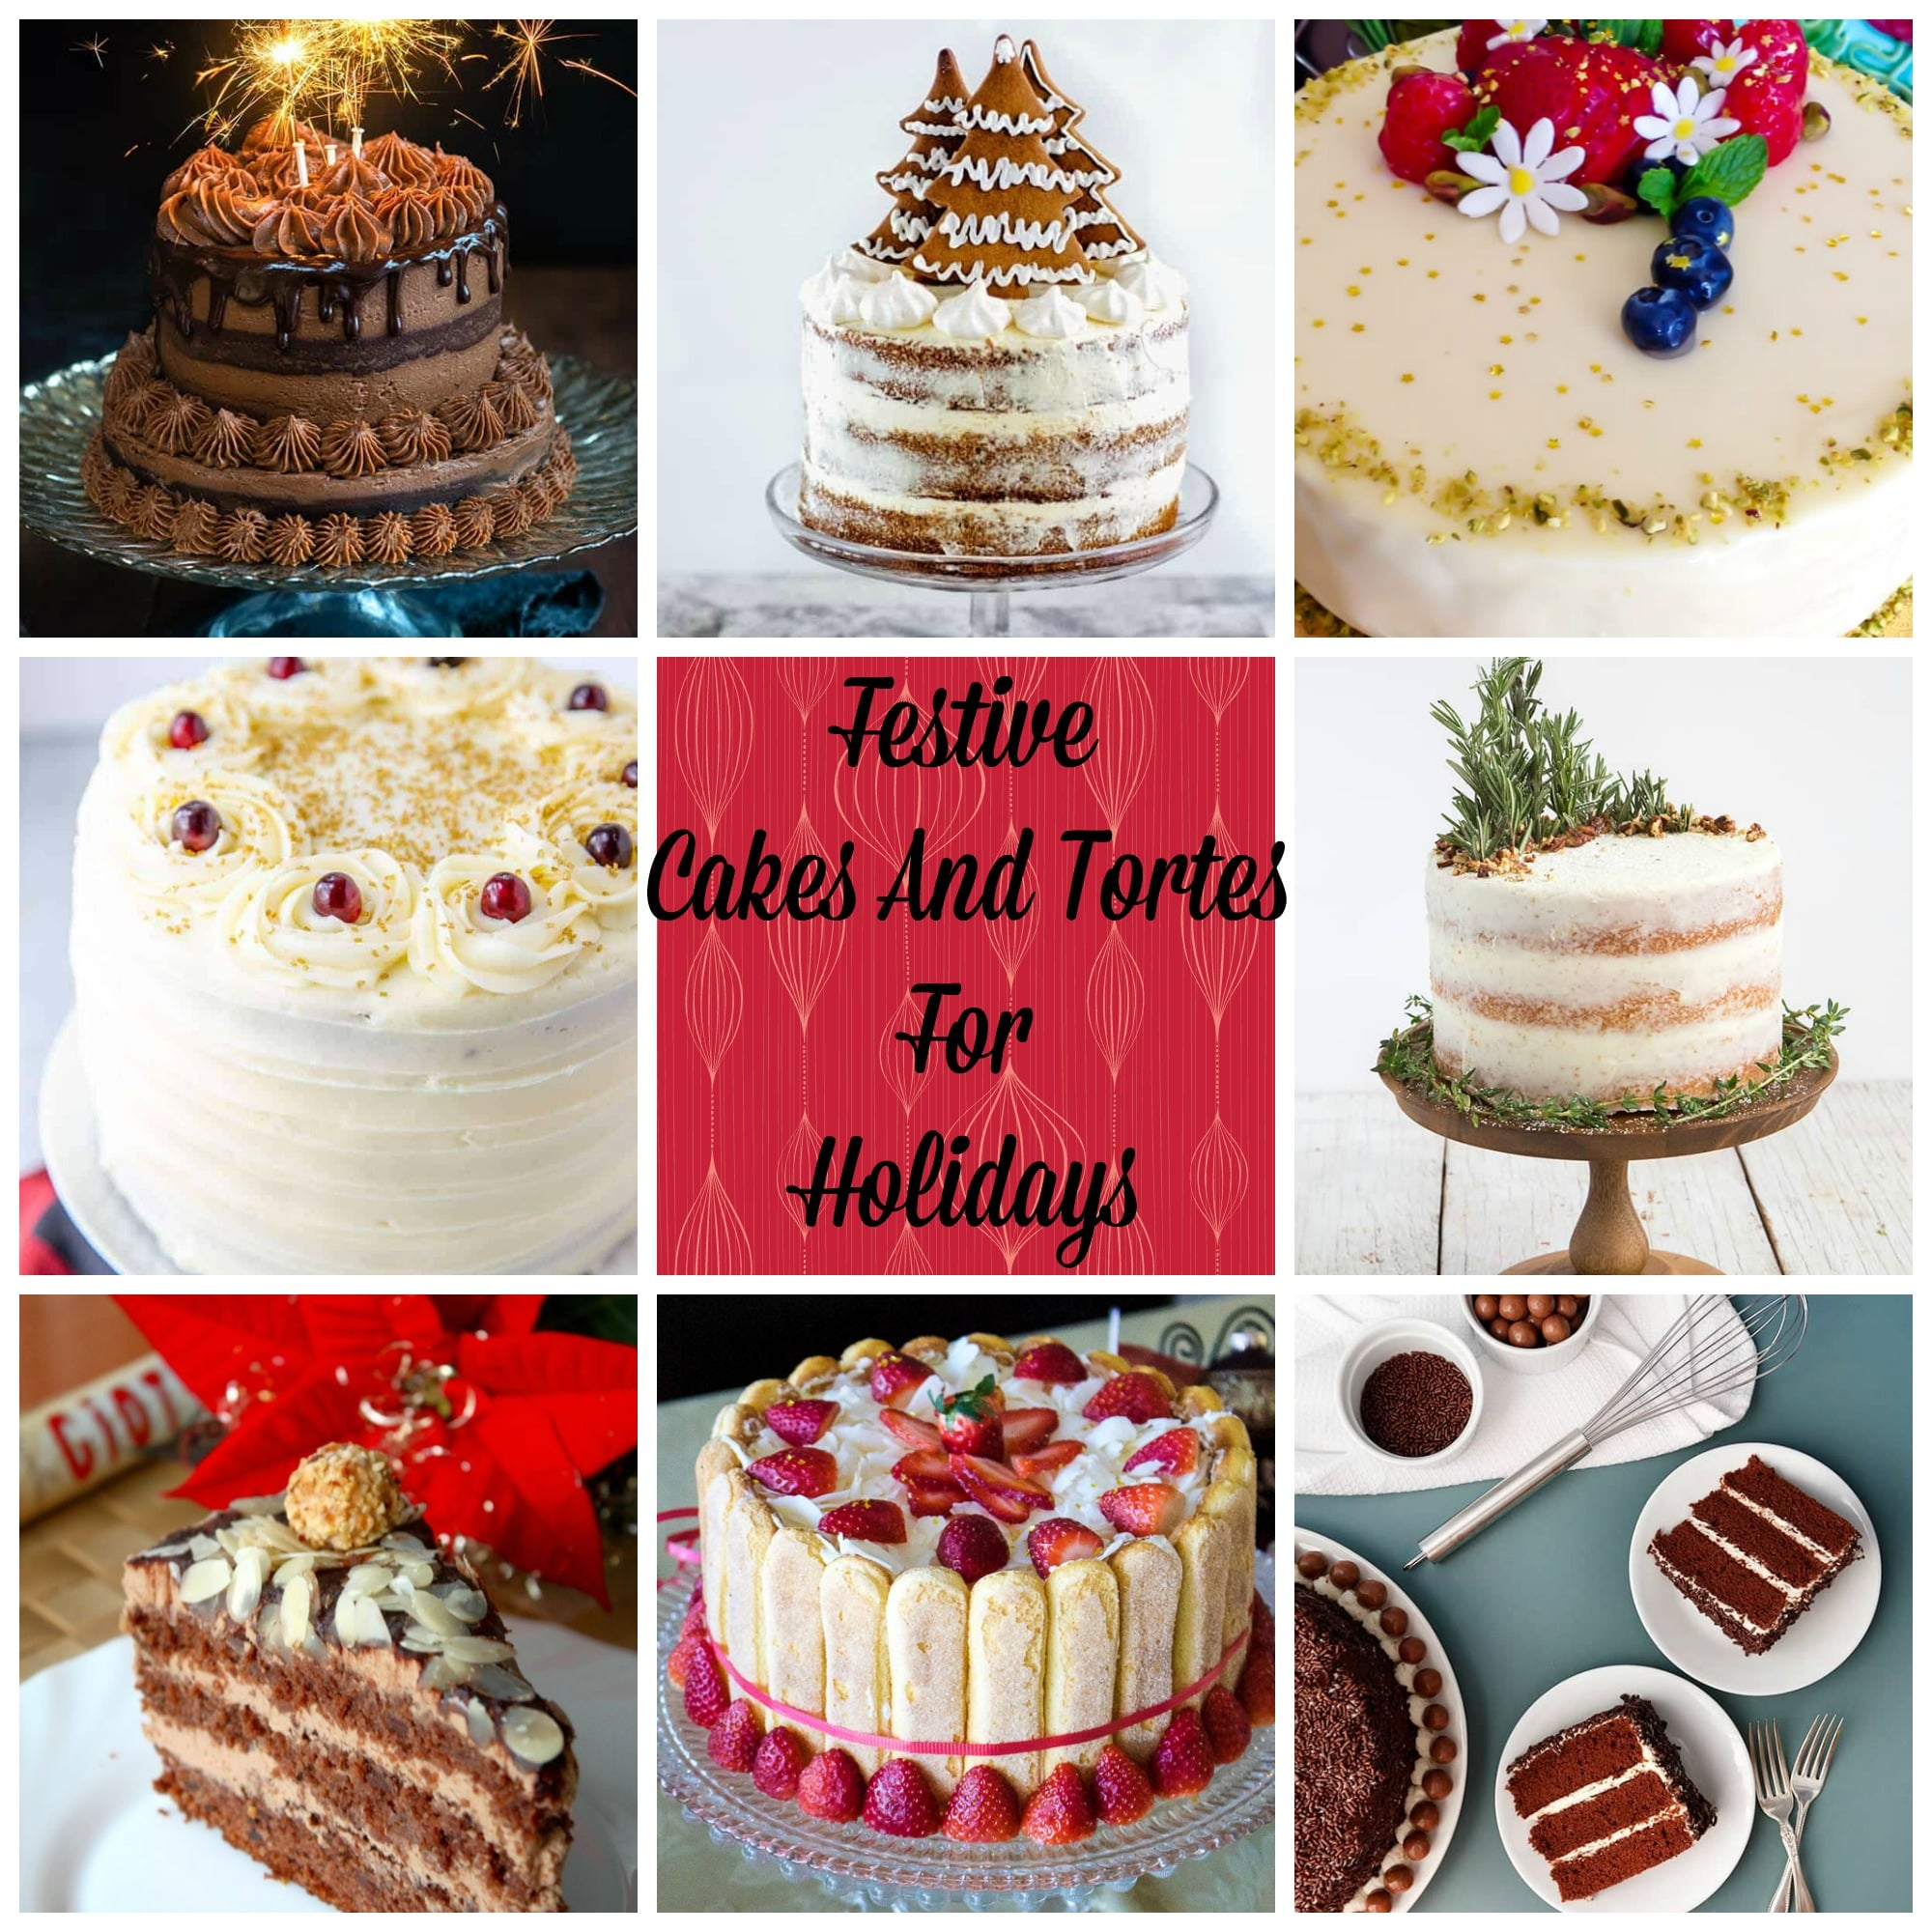 This is a collection of 17 Festive Cakes And Tortes For The Holidays. Great opportunity to bake delicious recipes for Christmas and New Years Eve parties.